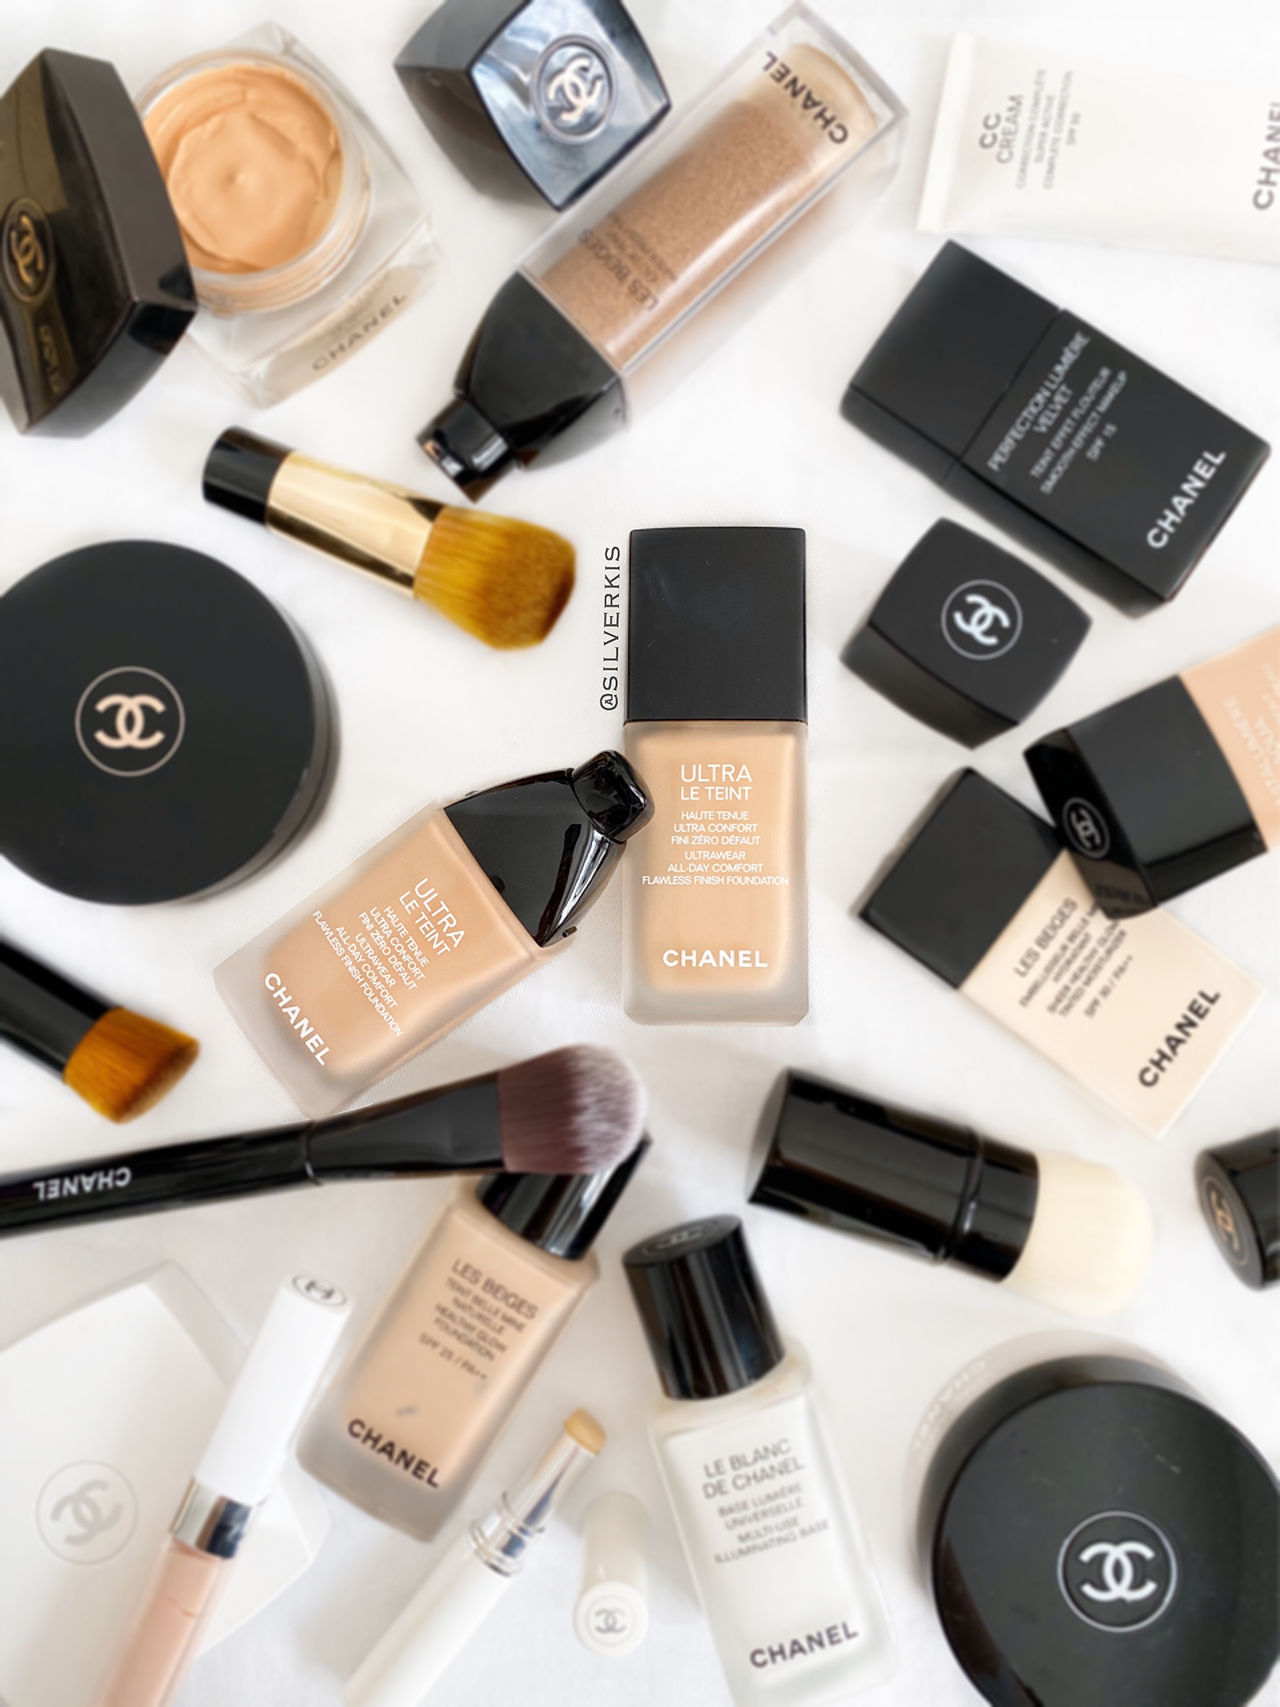 Chanel Ultra Le Teint Foundation